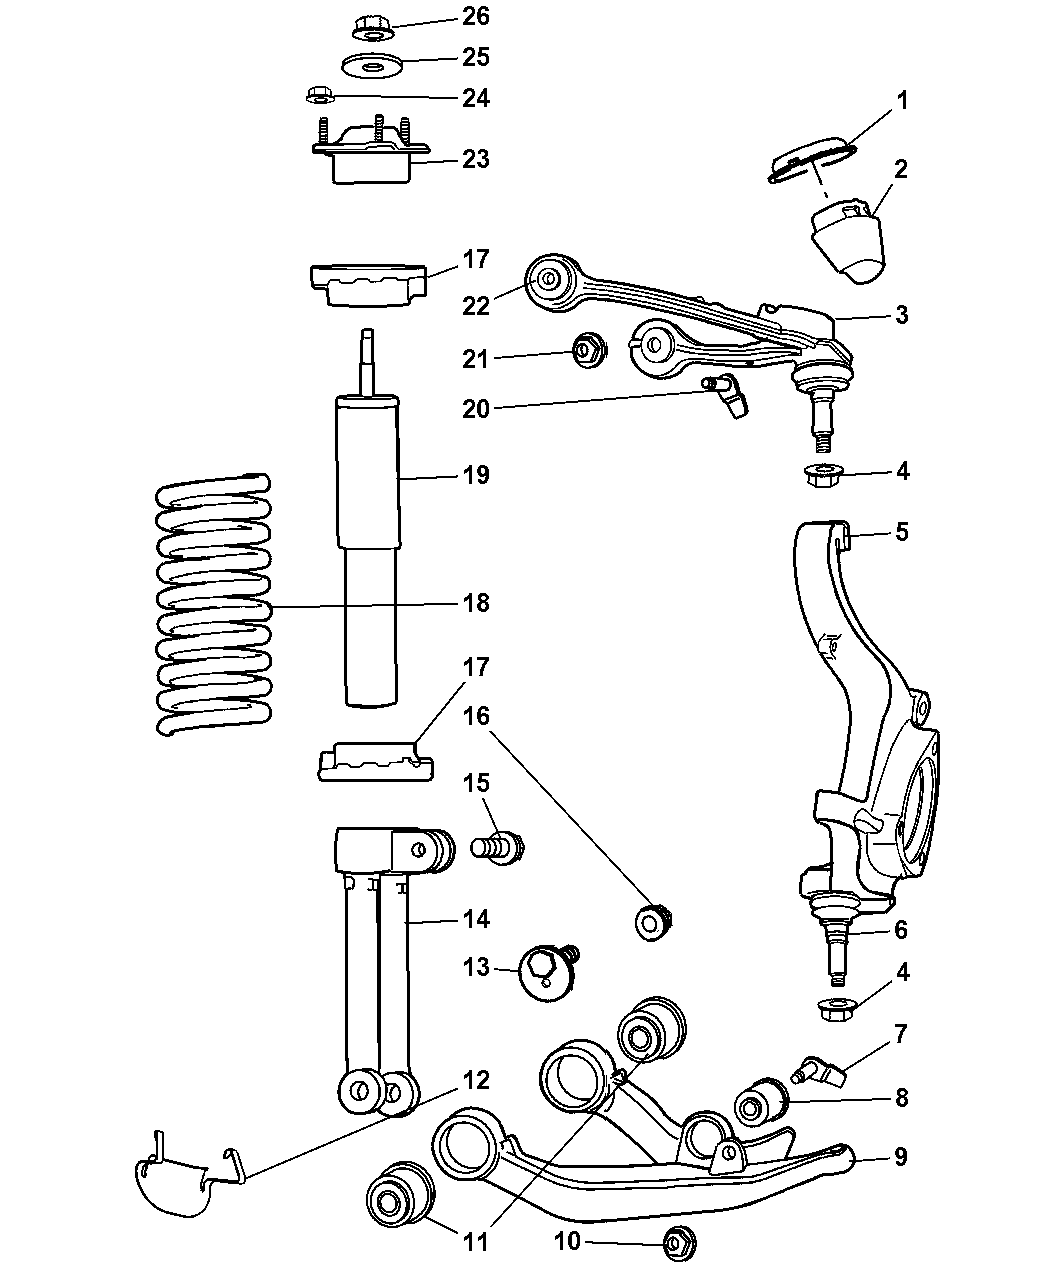 2005 jeep liberty front end parts diagram